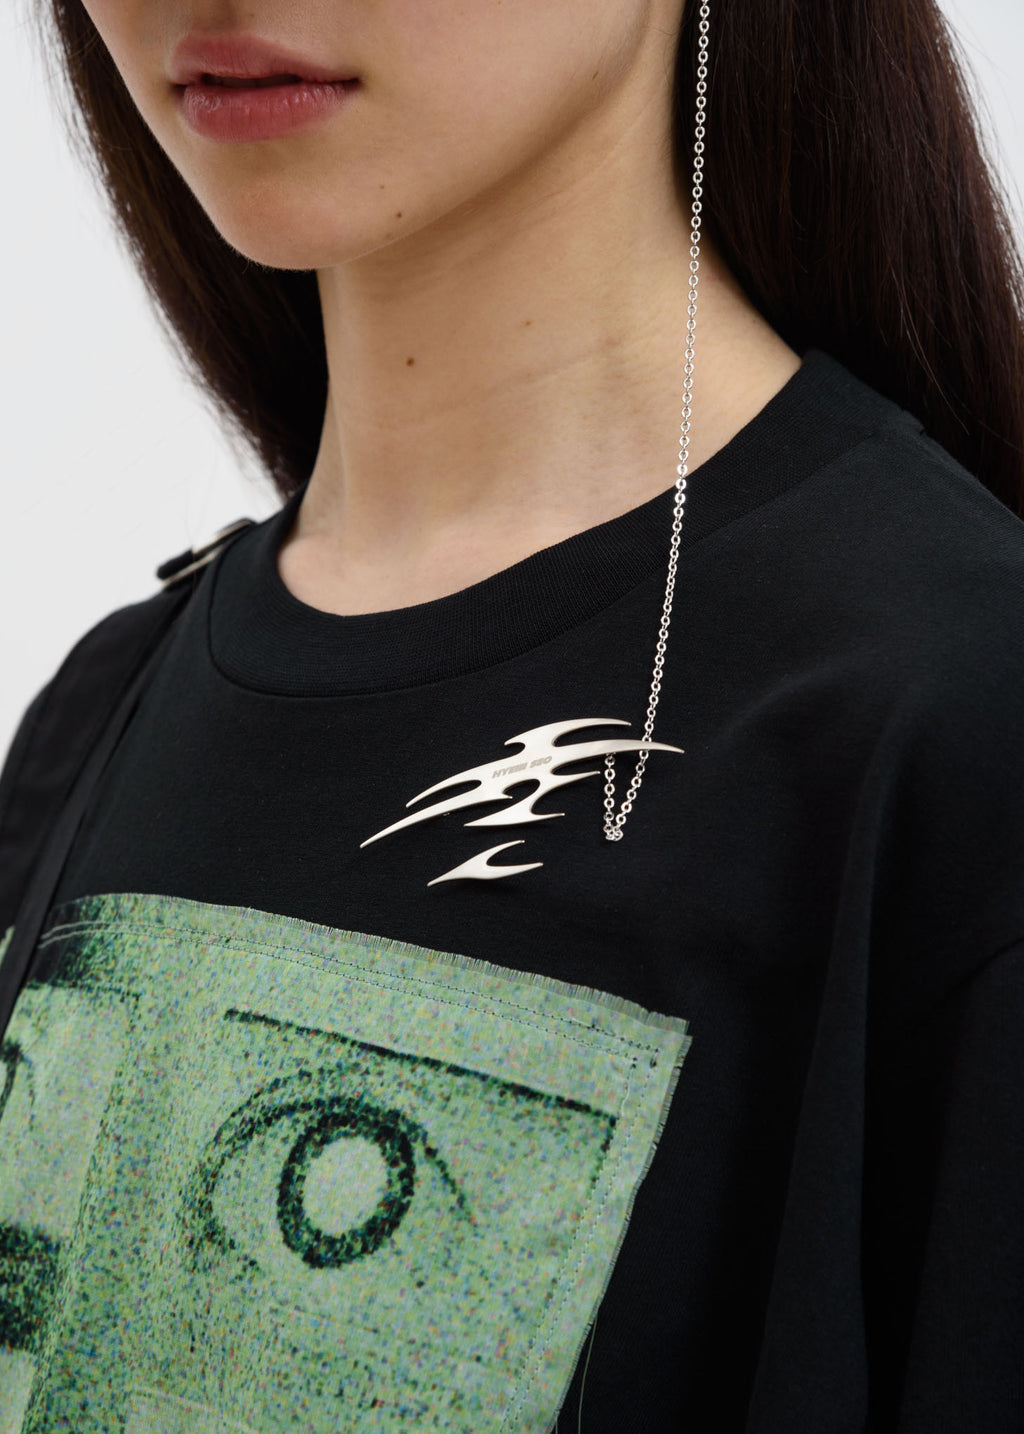 Hyein Seo, Metal Logo & Earring, 017 Shop